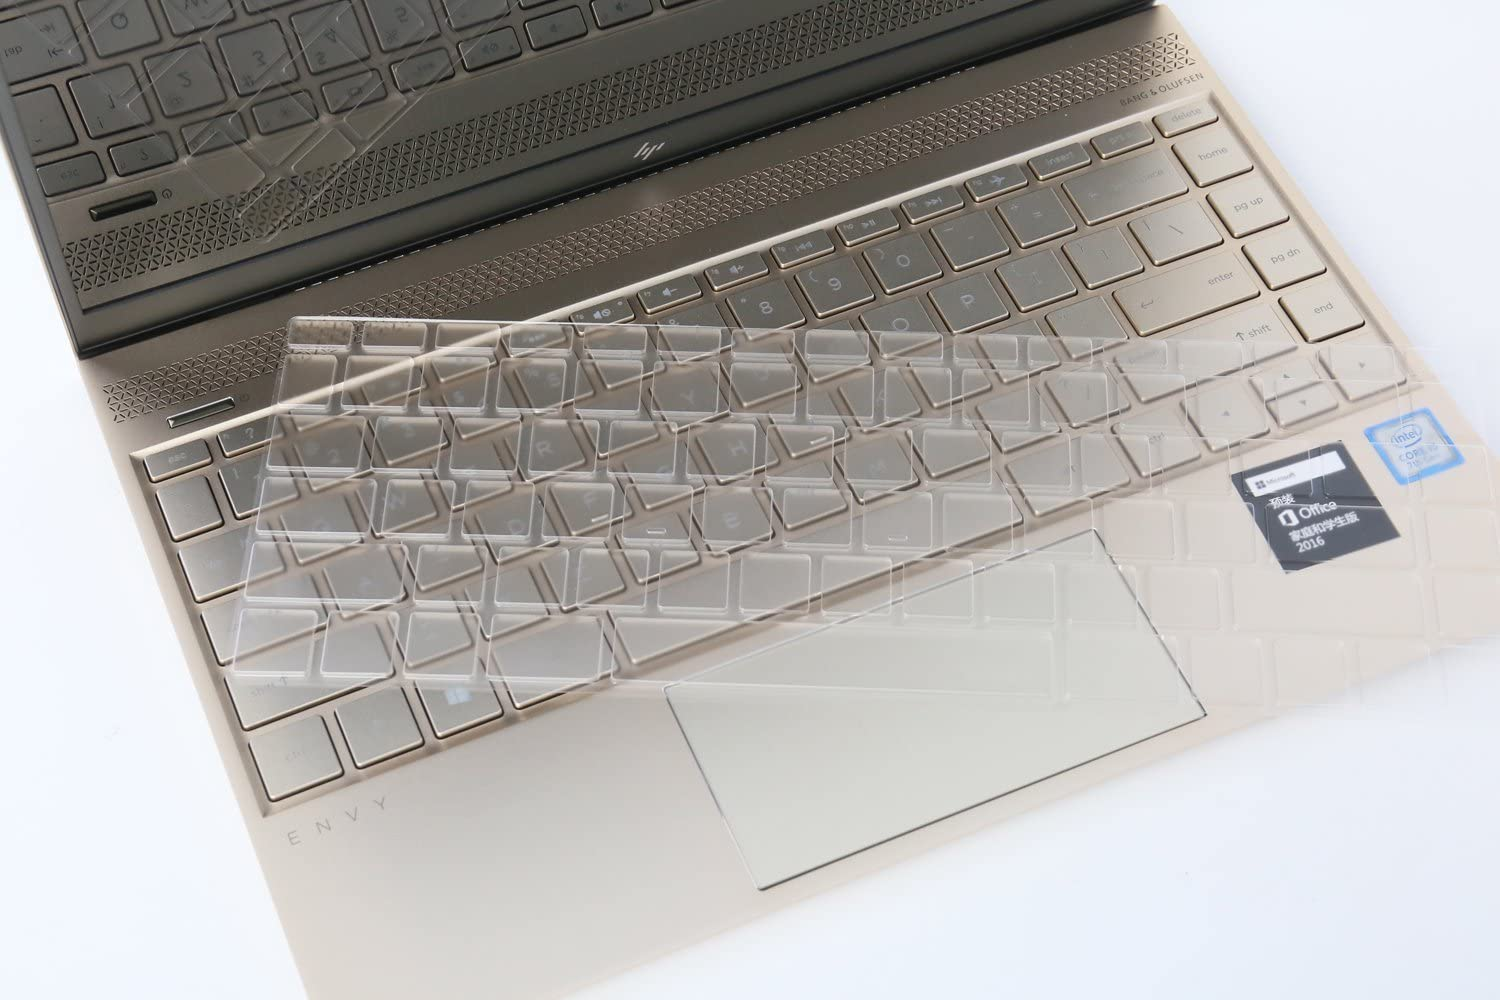 Release After February 2017 Leze ,BL-series 15-BL012DX 15-BL112DX 15-BL075nr,15-AP011DX 15-AP011DX 15-AP012DX Series Laptop Ultra Thin Keyboard Cover for 15.6 HP Spectre x360 15t TPU